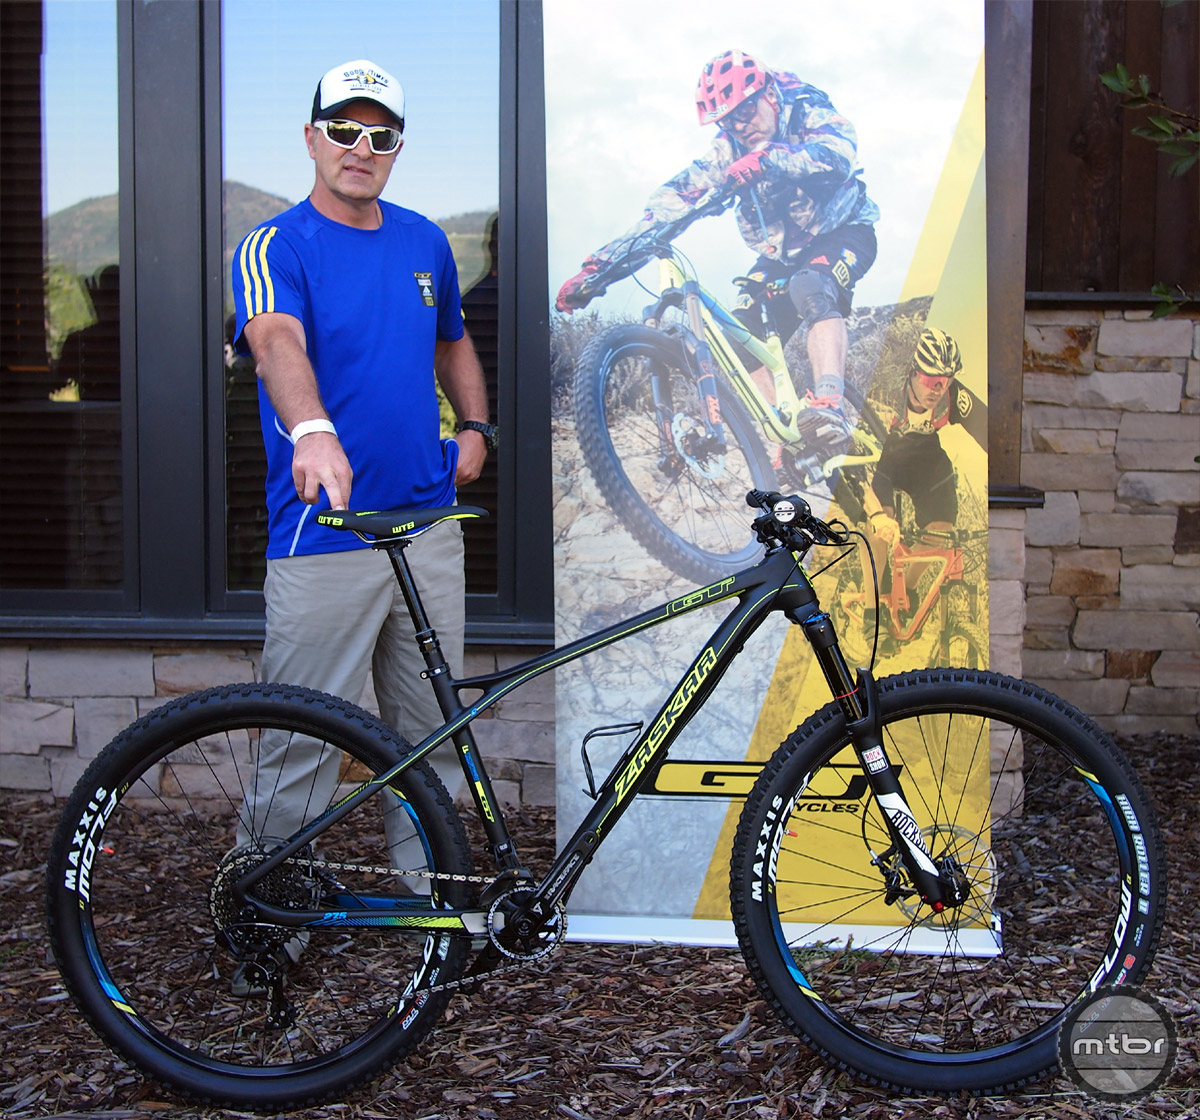 Mountain biking legend Hans Rey has been with GT Bicycles forever and he enjoys riding his Zaskar LTD Carbon.